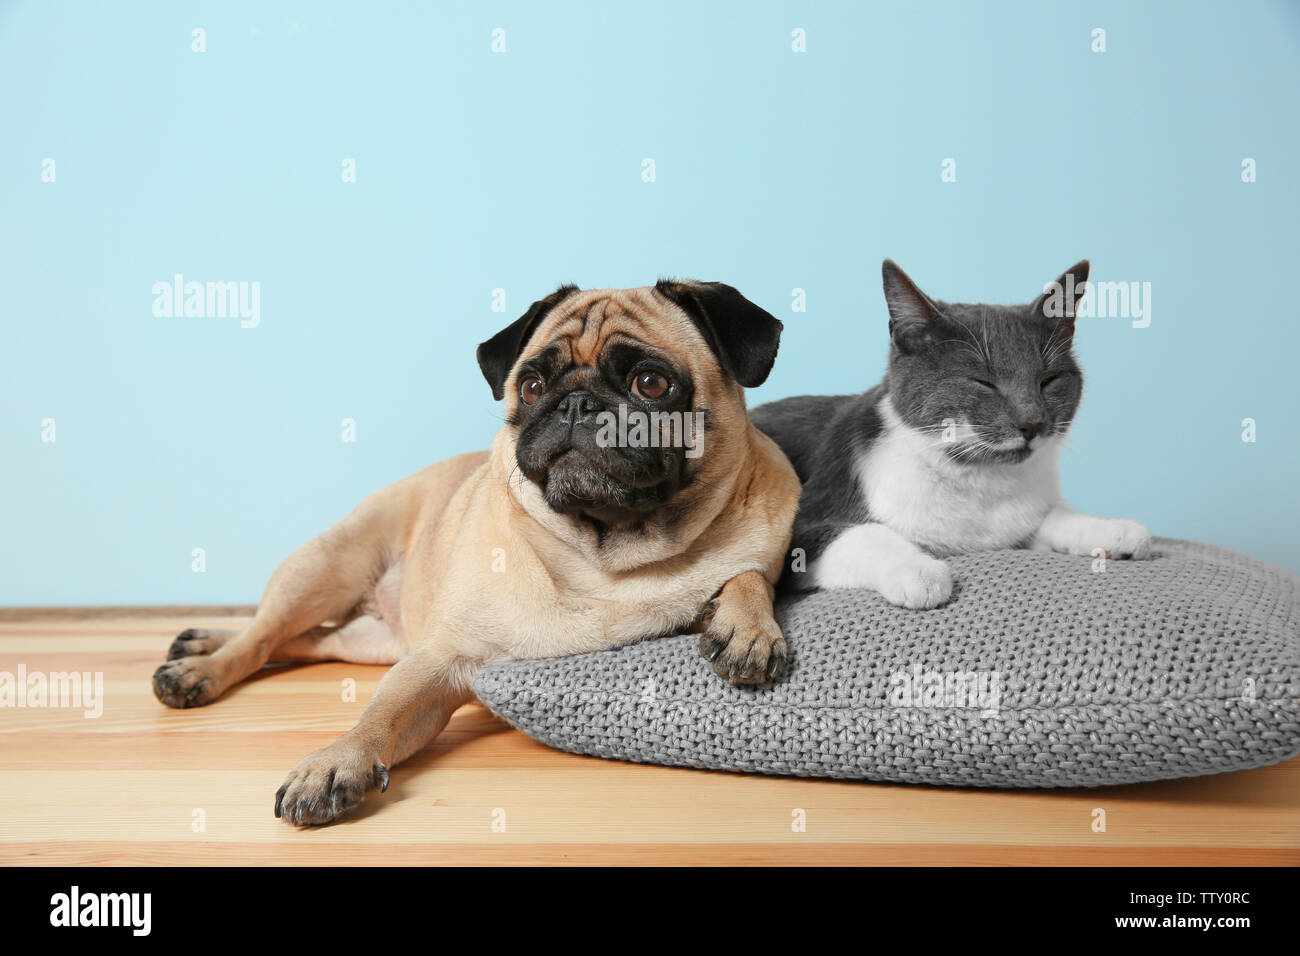 Adorable Pug And Cute Cat Lying Together On Pillow Stock Photo Alamy